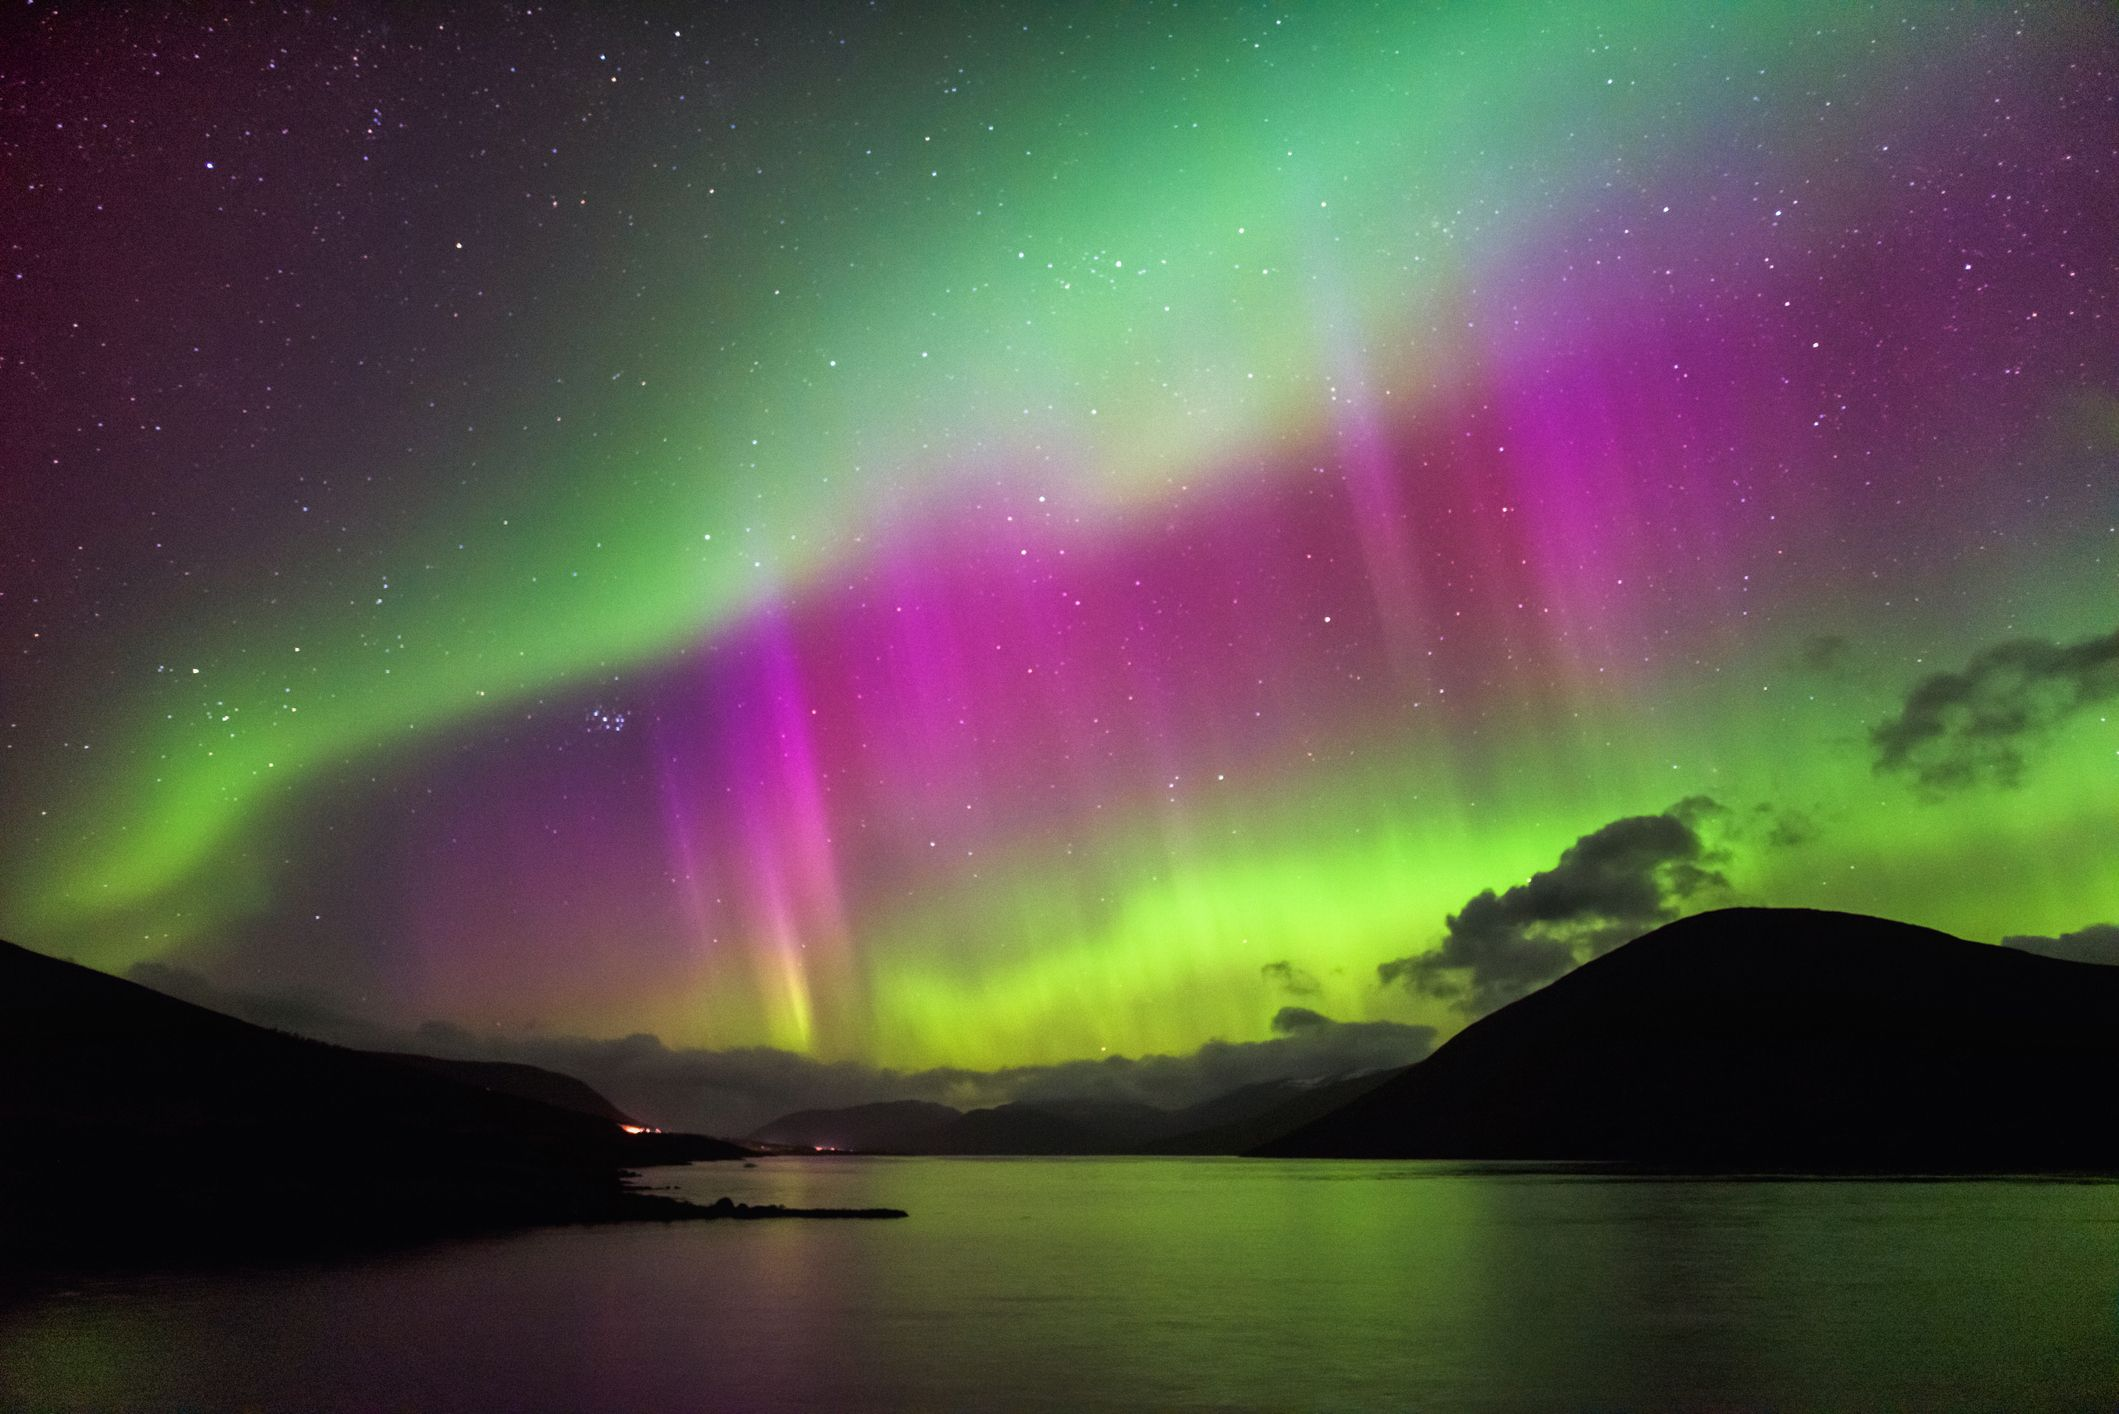 the northern lights appeared